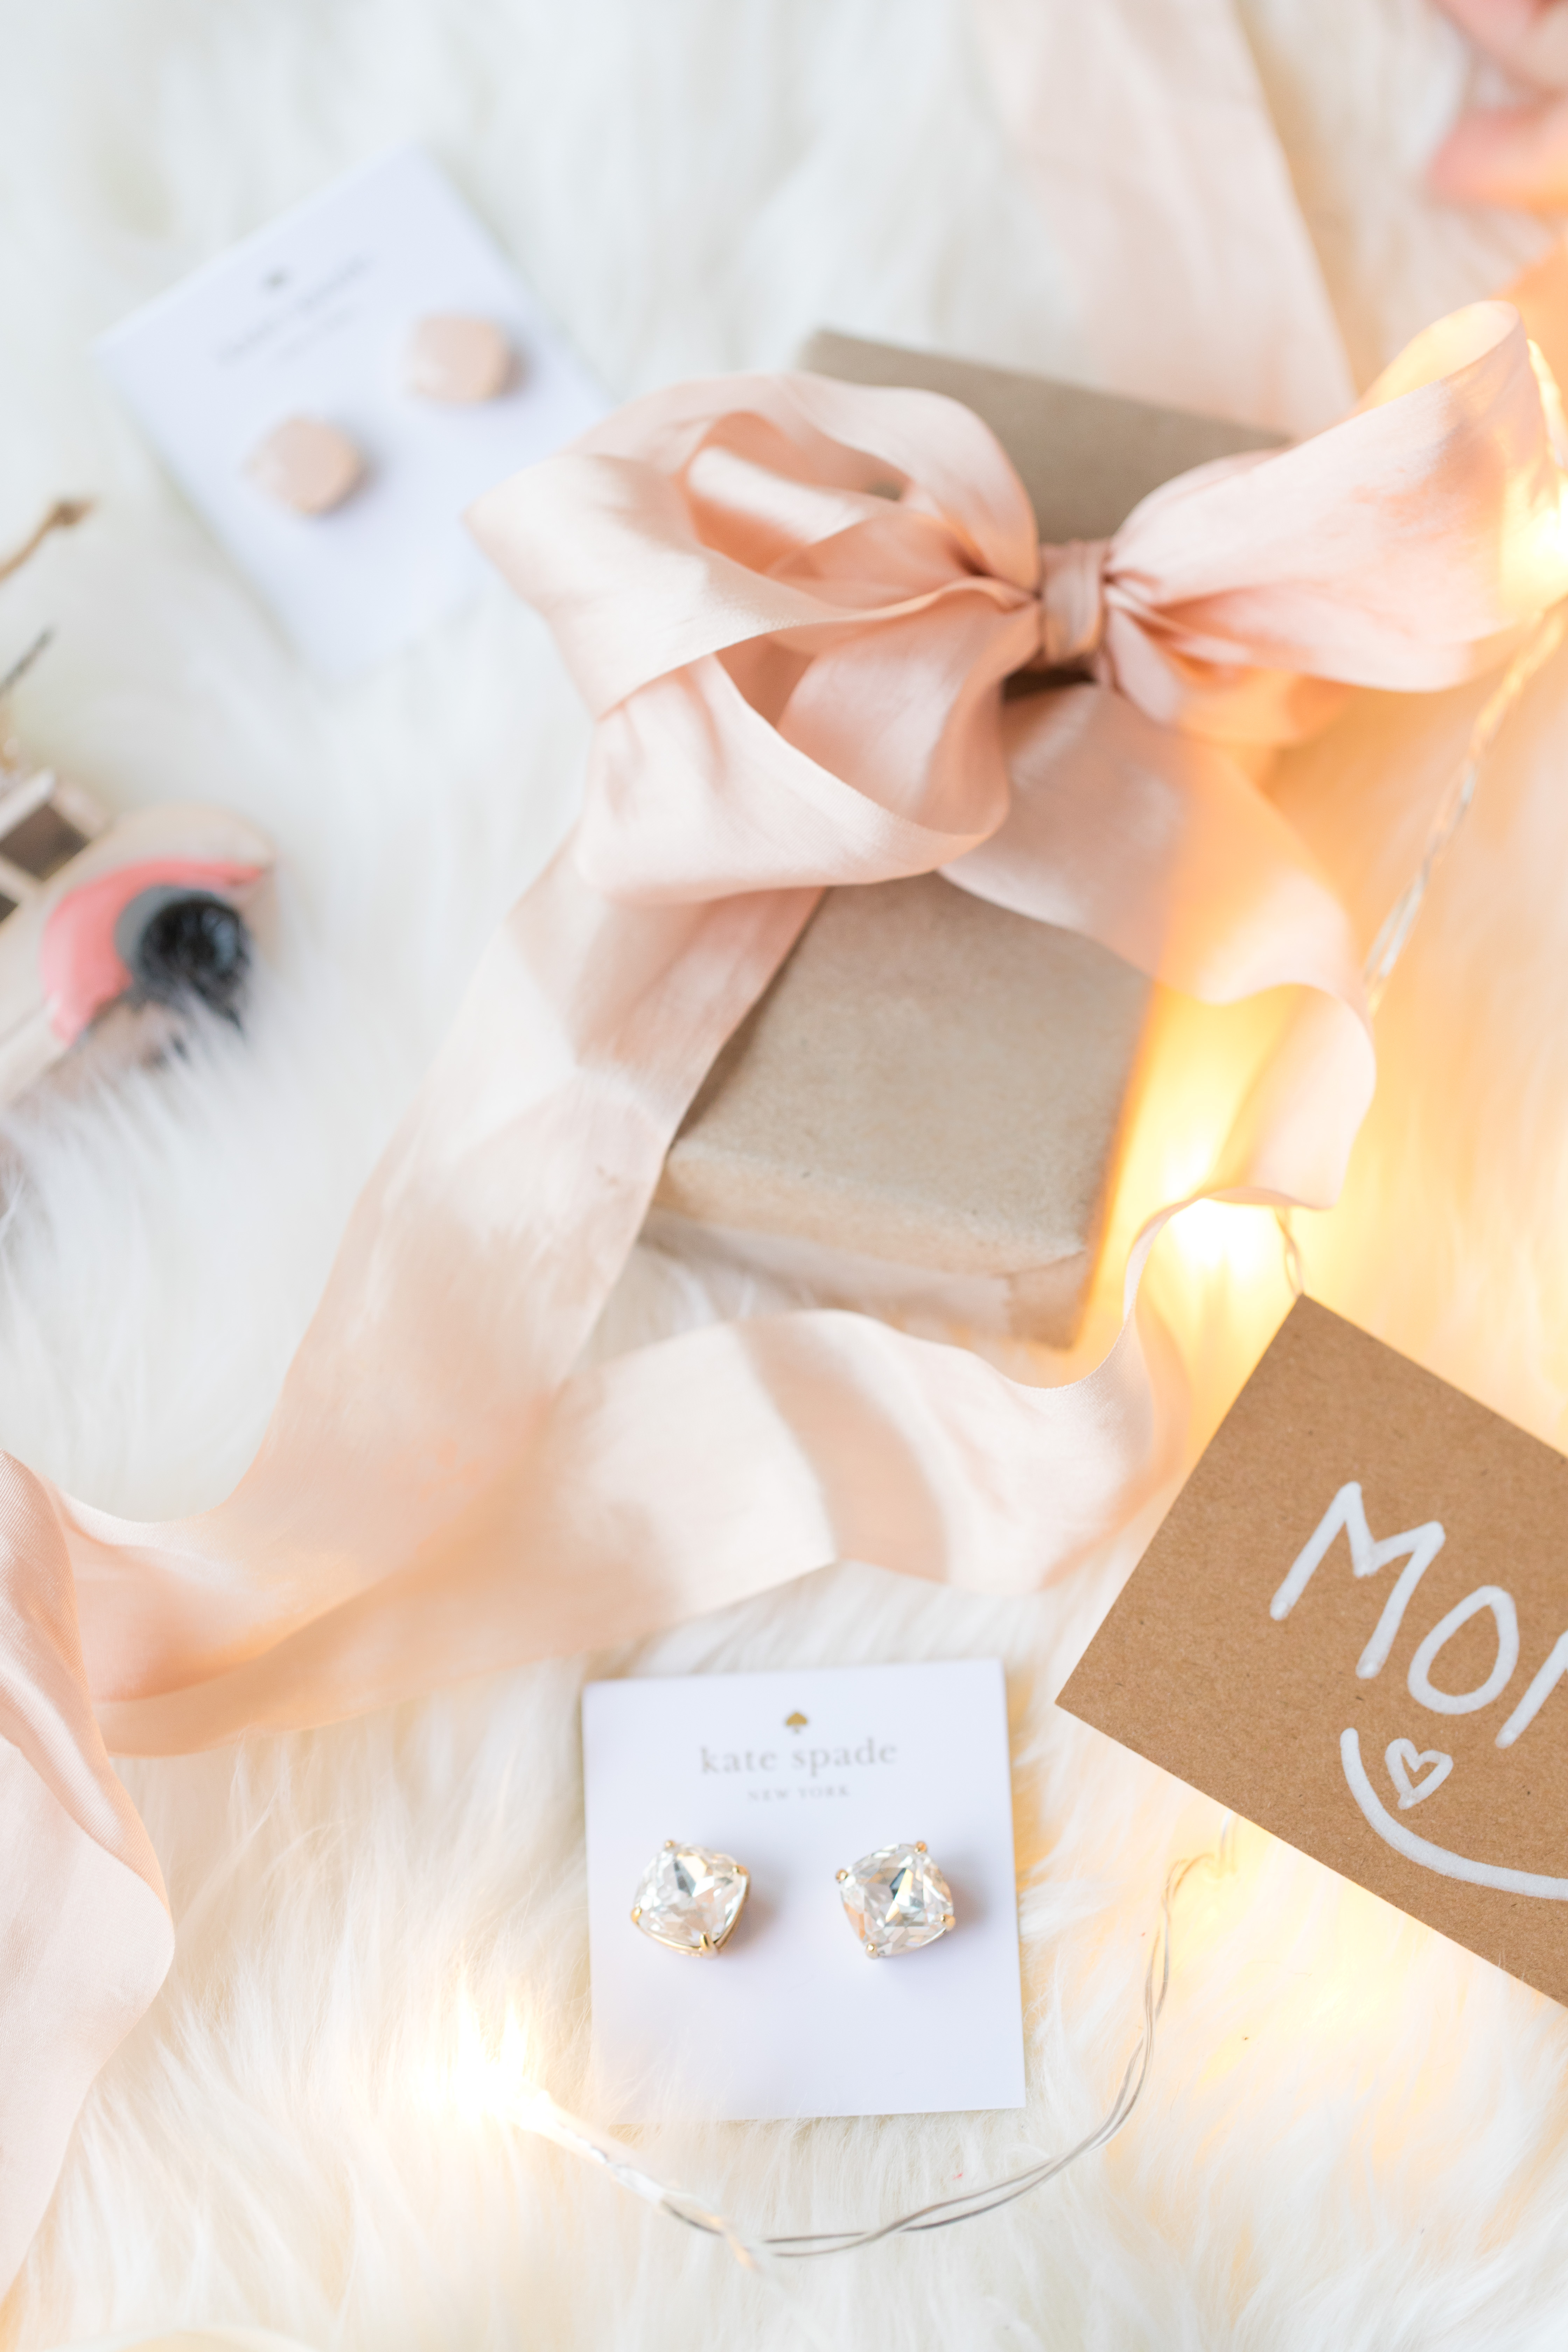 Jillian Harris Nordstrom Holiday Gifts for Everyone